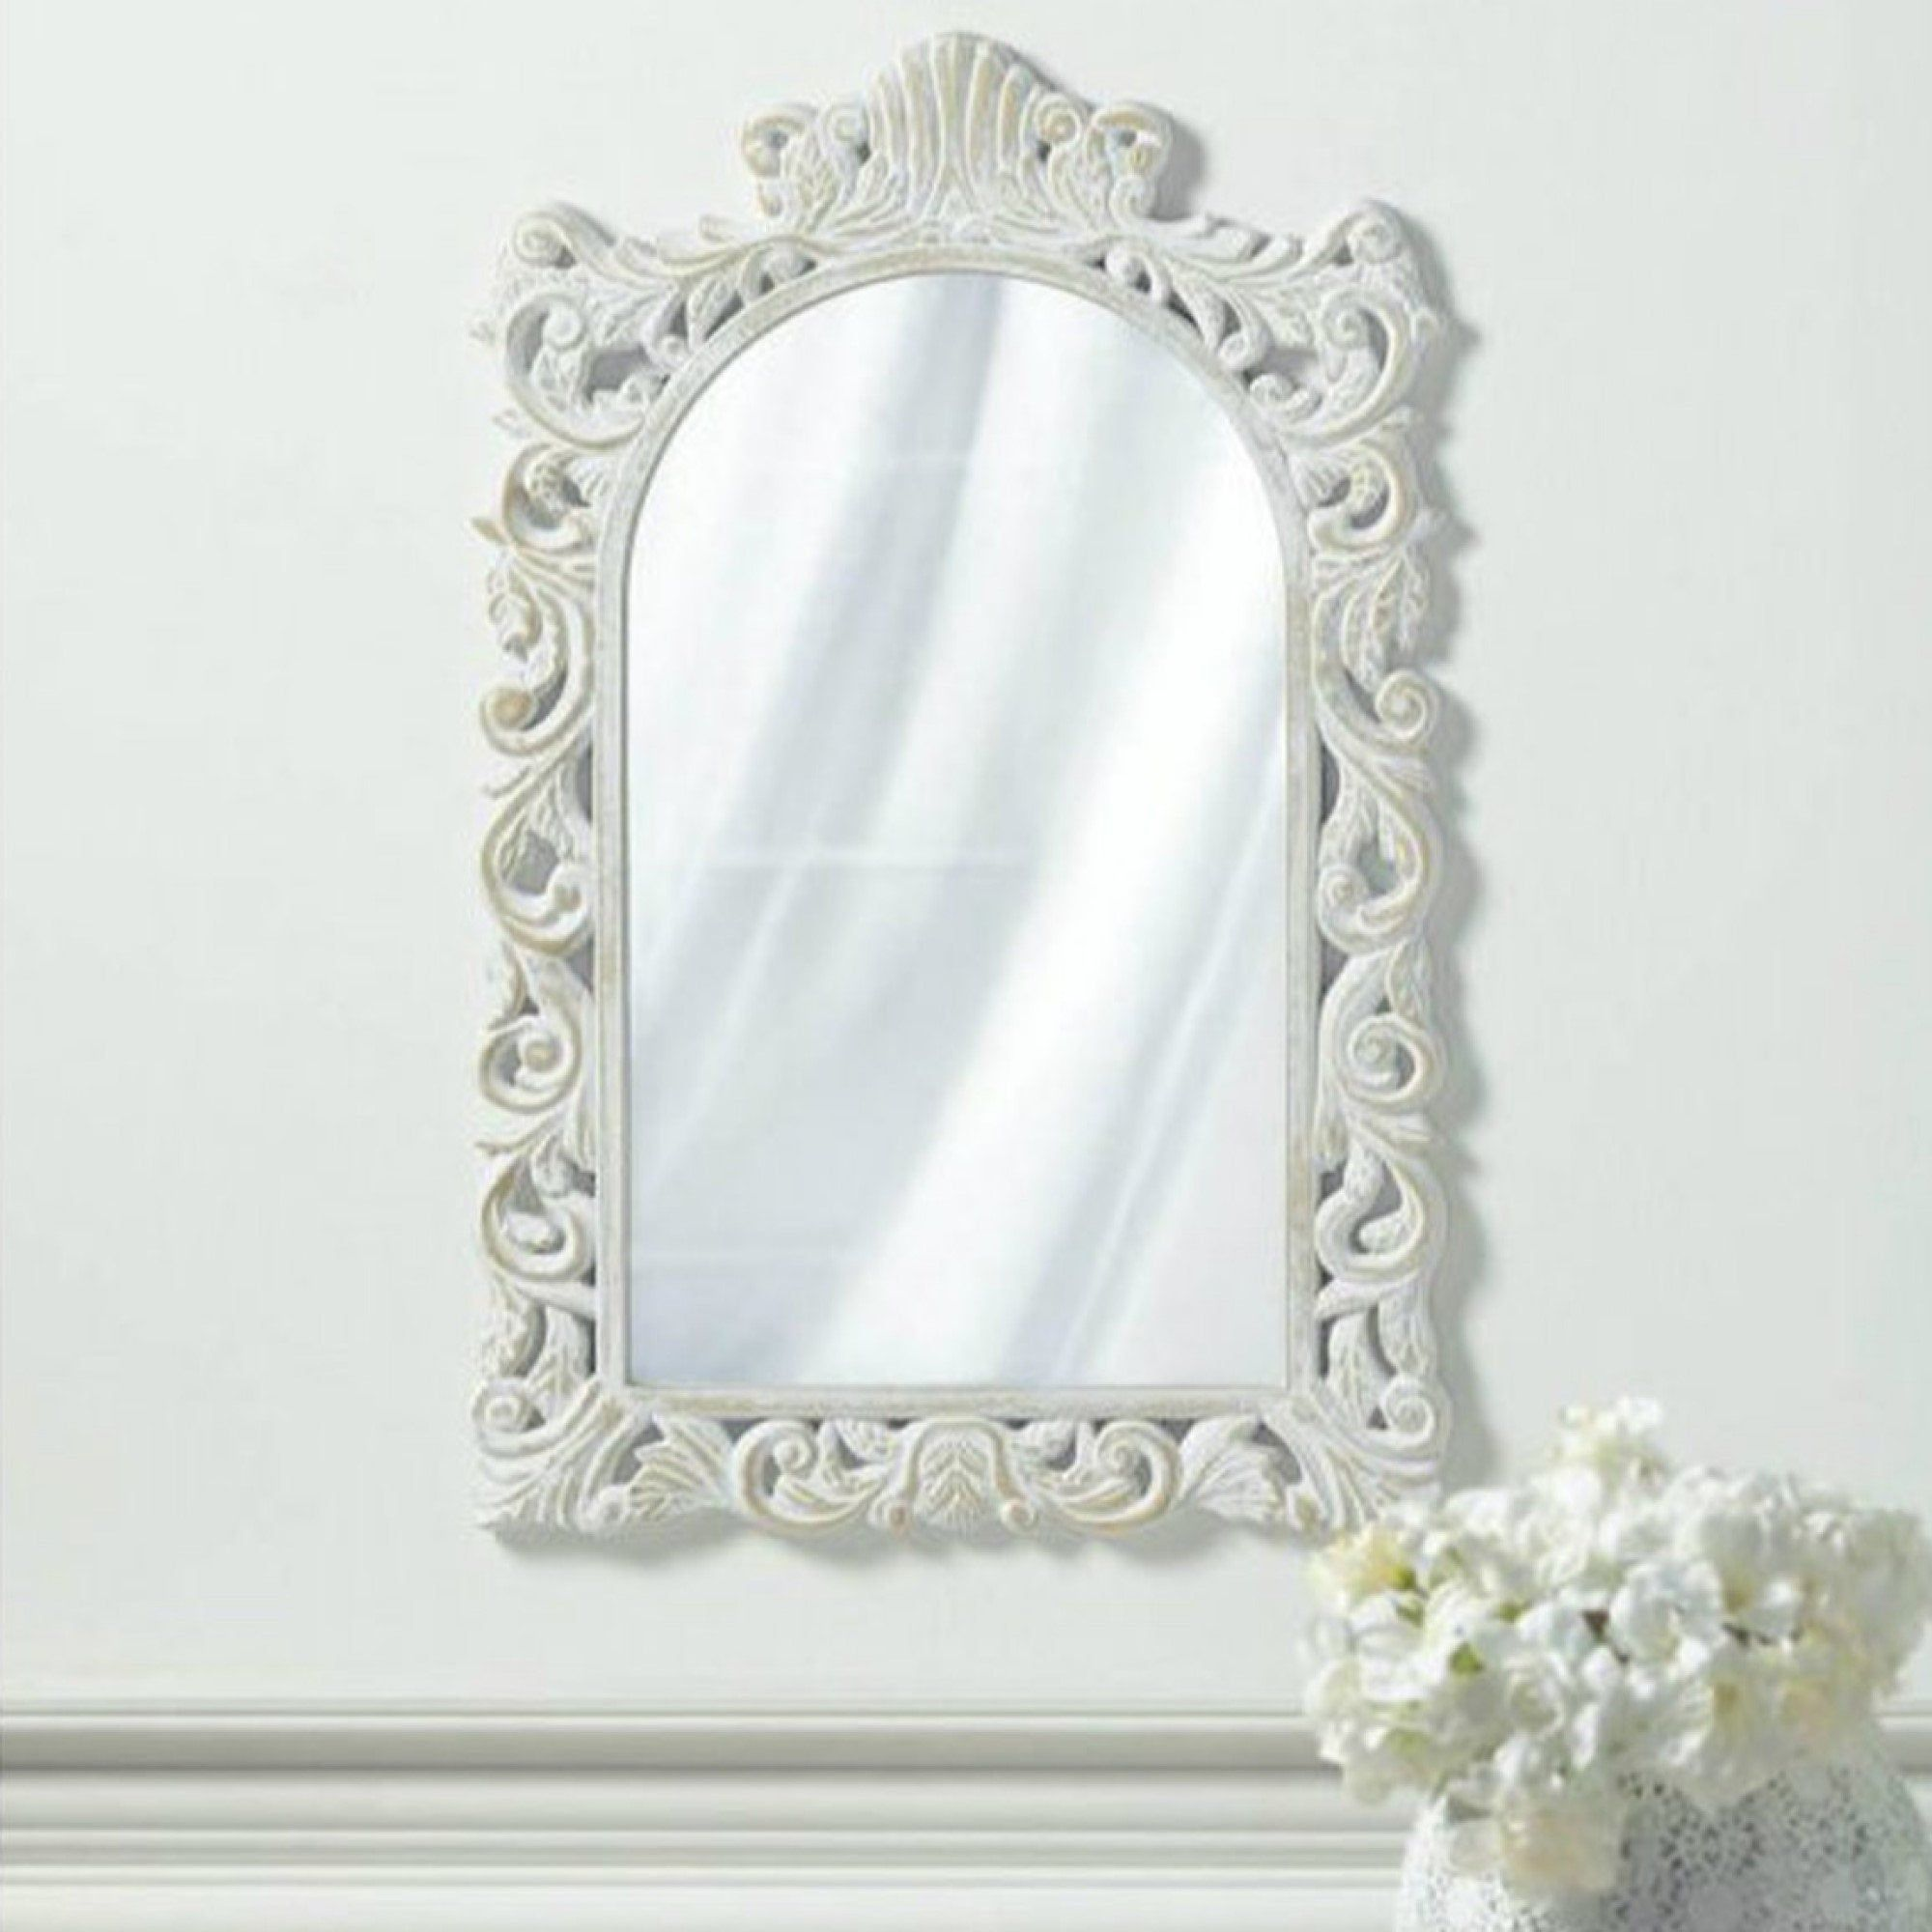 Excited To Share The Latest Addition To My Etsy Shop Grand Distressed White Wall Mirror Https Etsy Me 2tc In 2020 White Wall Mirrors Mirror Wall White Mirror Frame